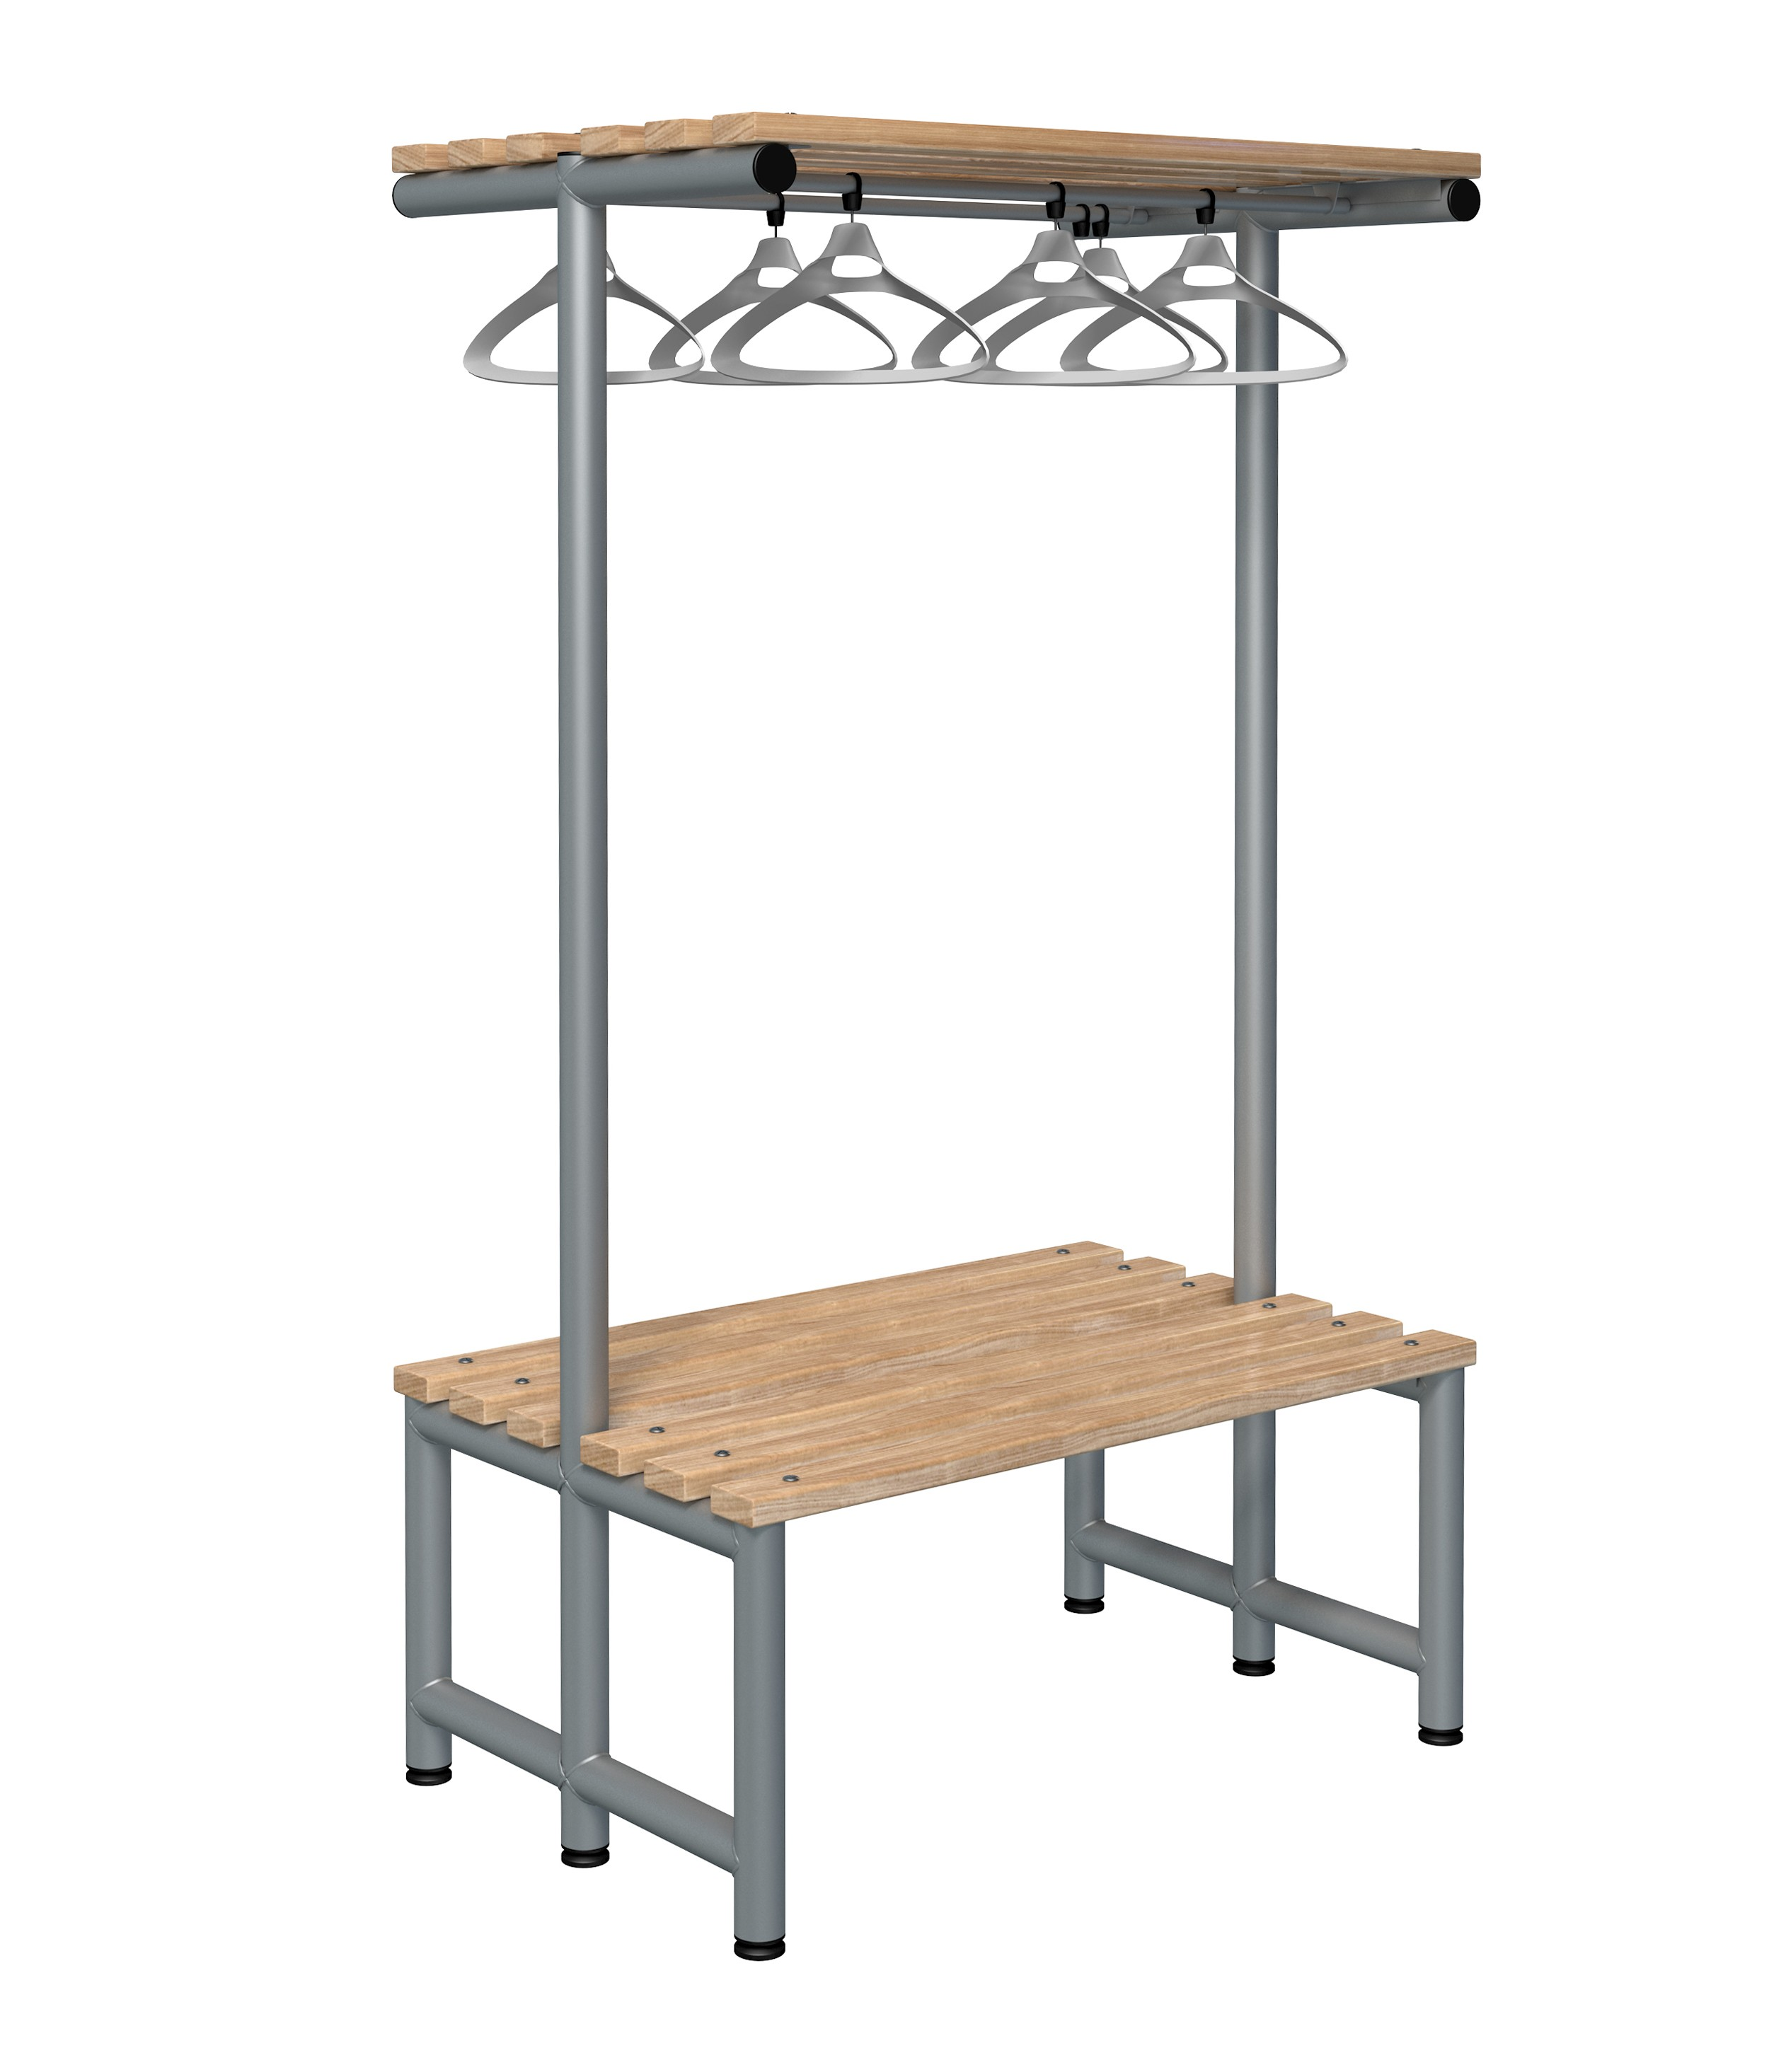 Double Sided Overhead Hanging Bench - Type G